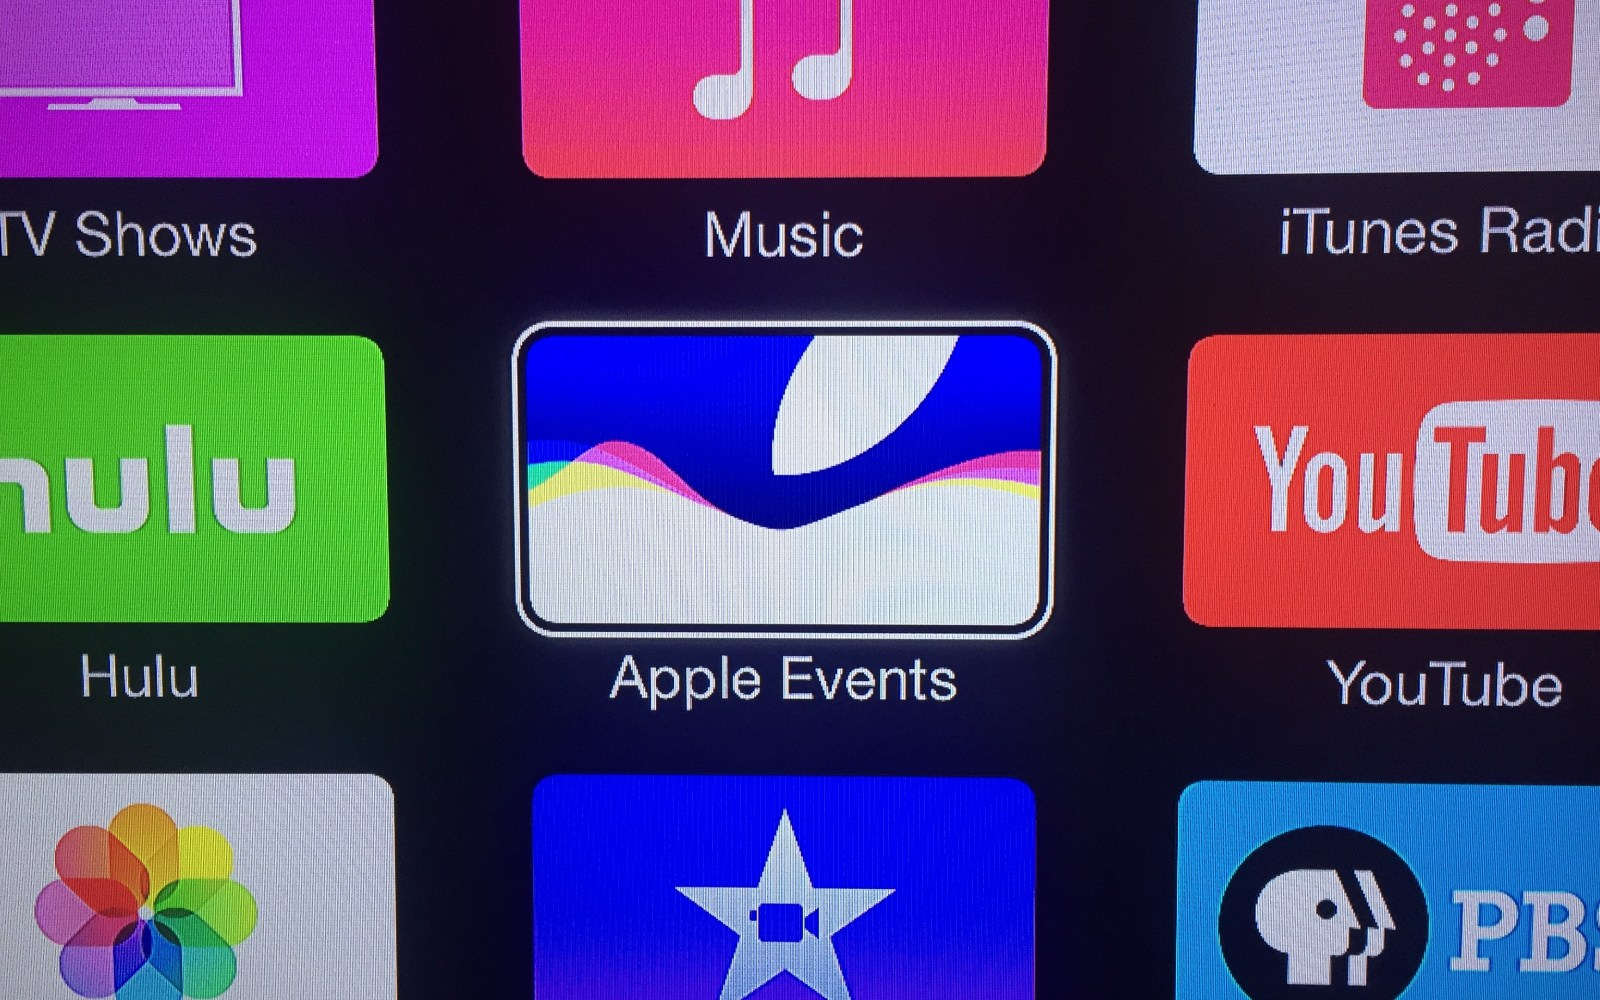 Apple TV refreshes Events channel ahead of iPhone 6S announcement livestream